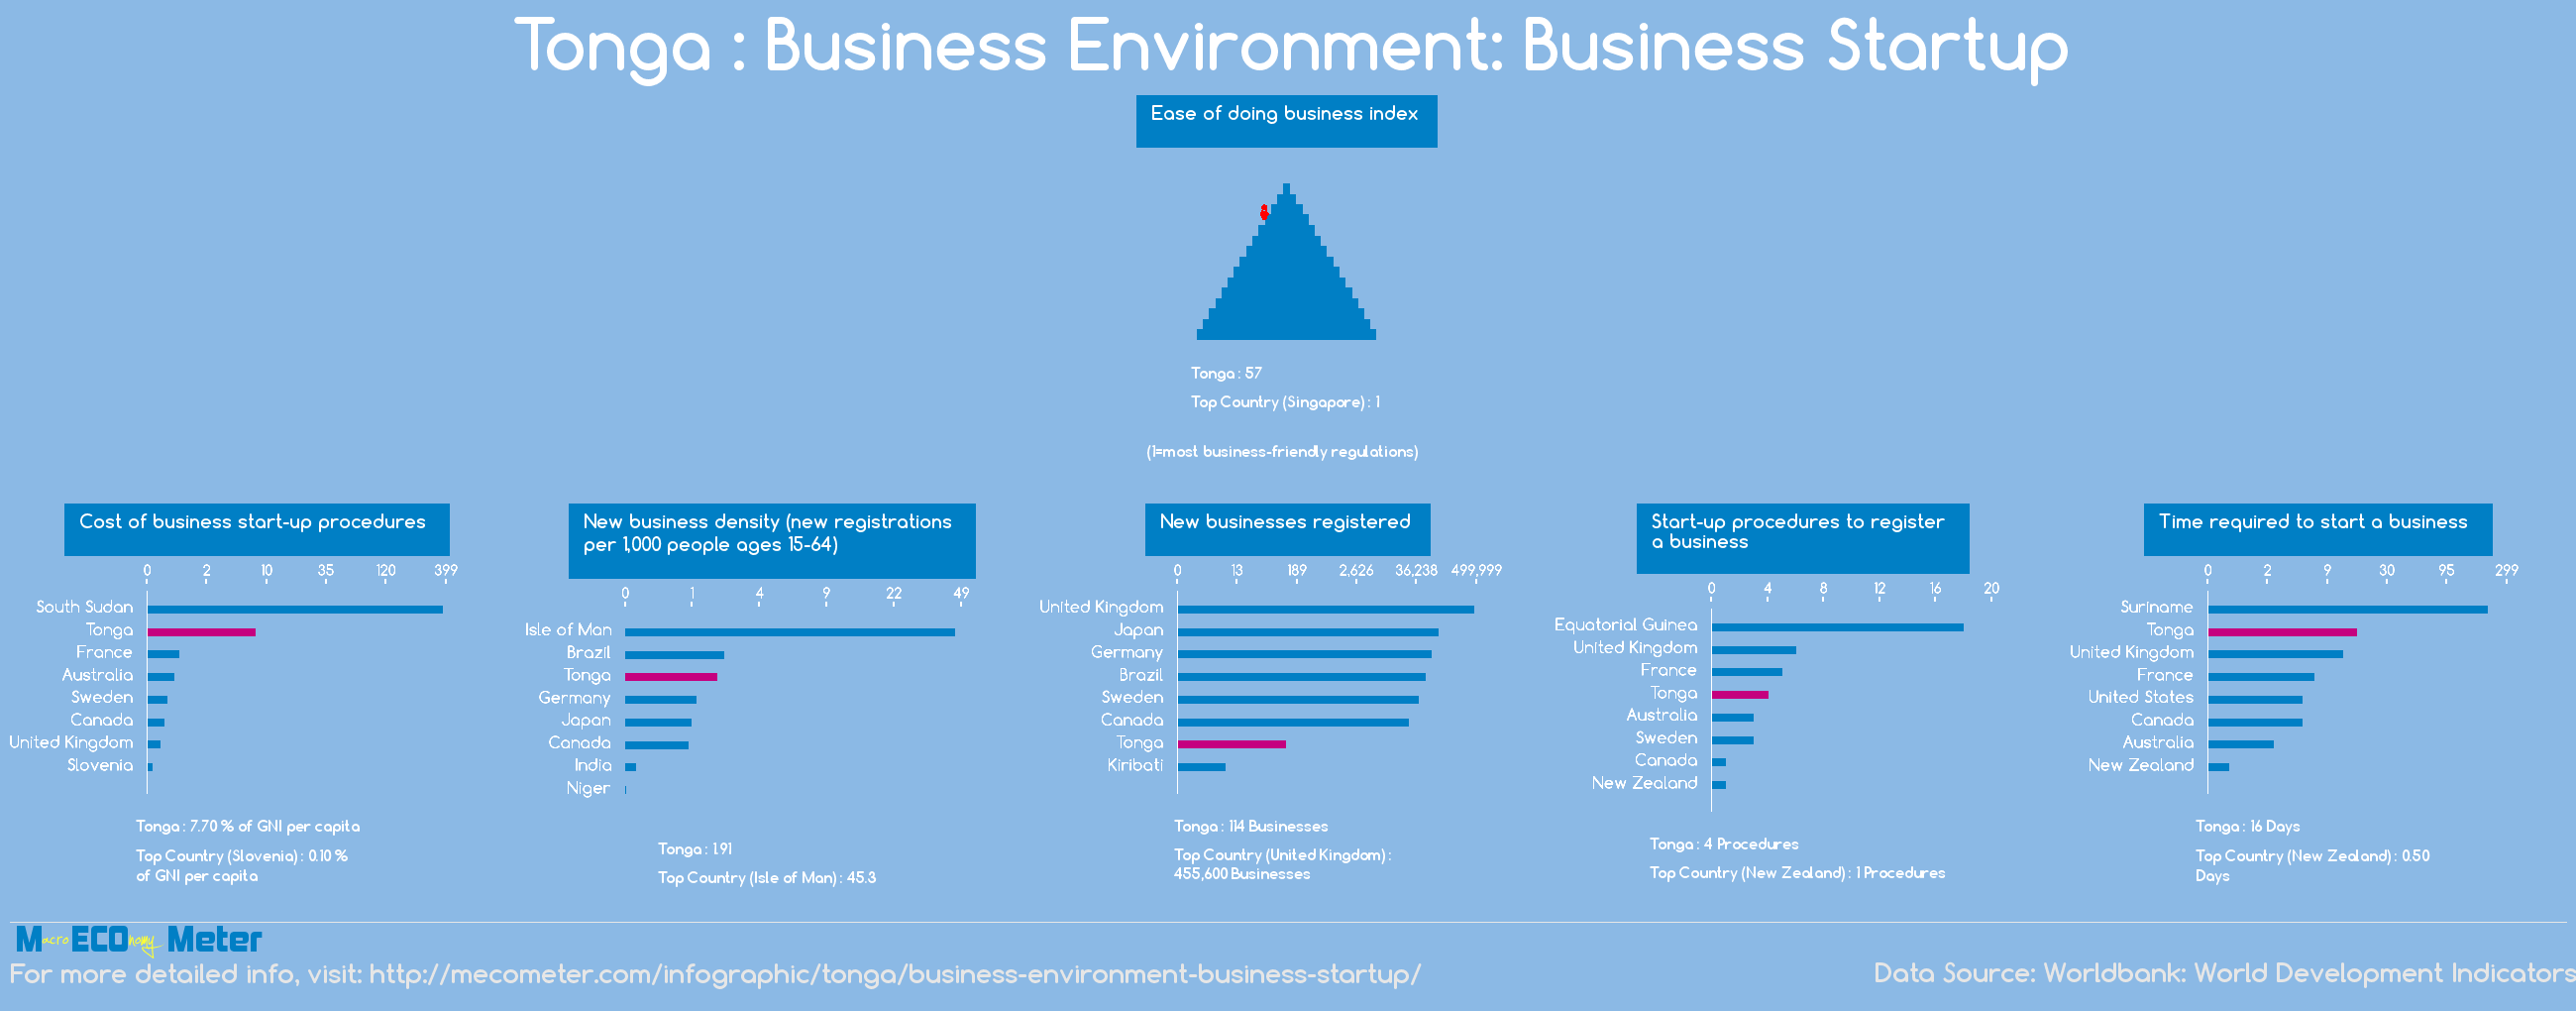 Tonga : Business Environment: Business Startup